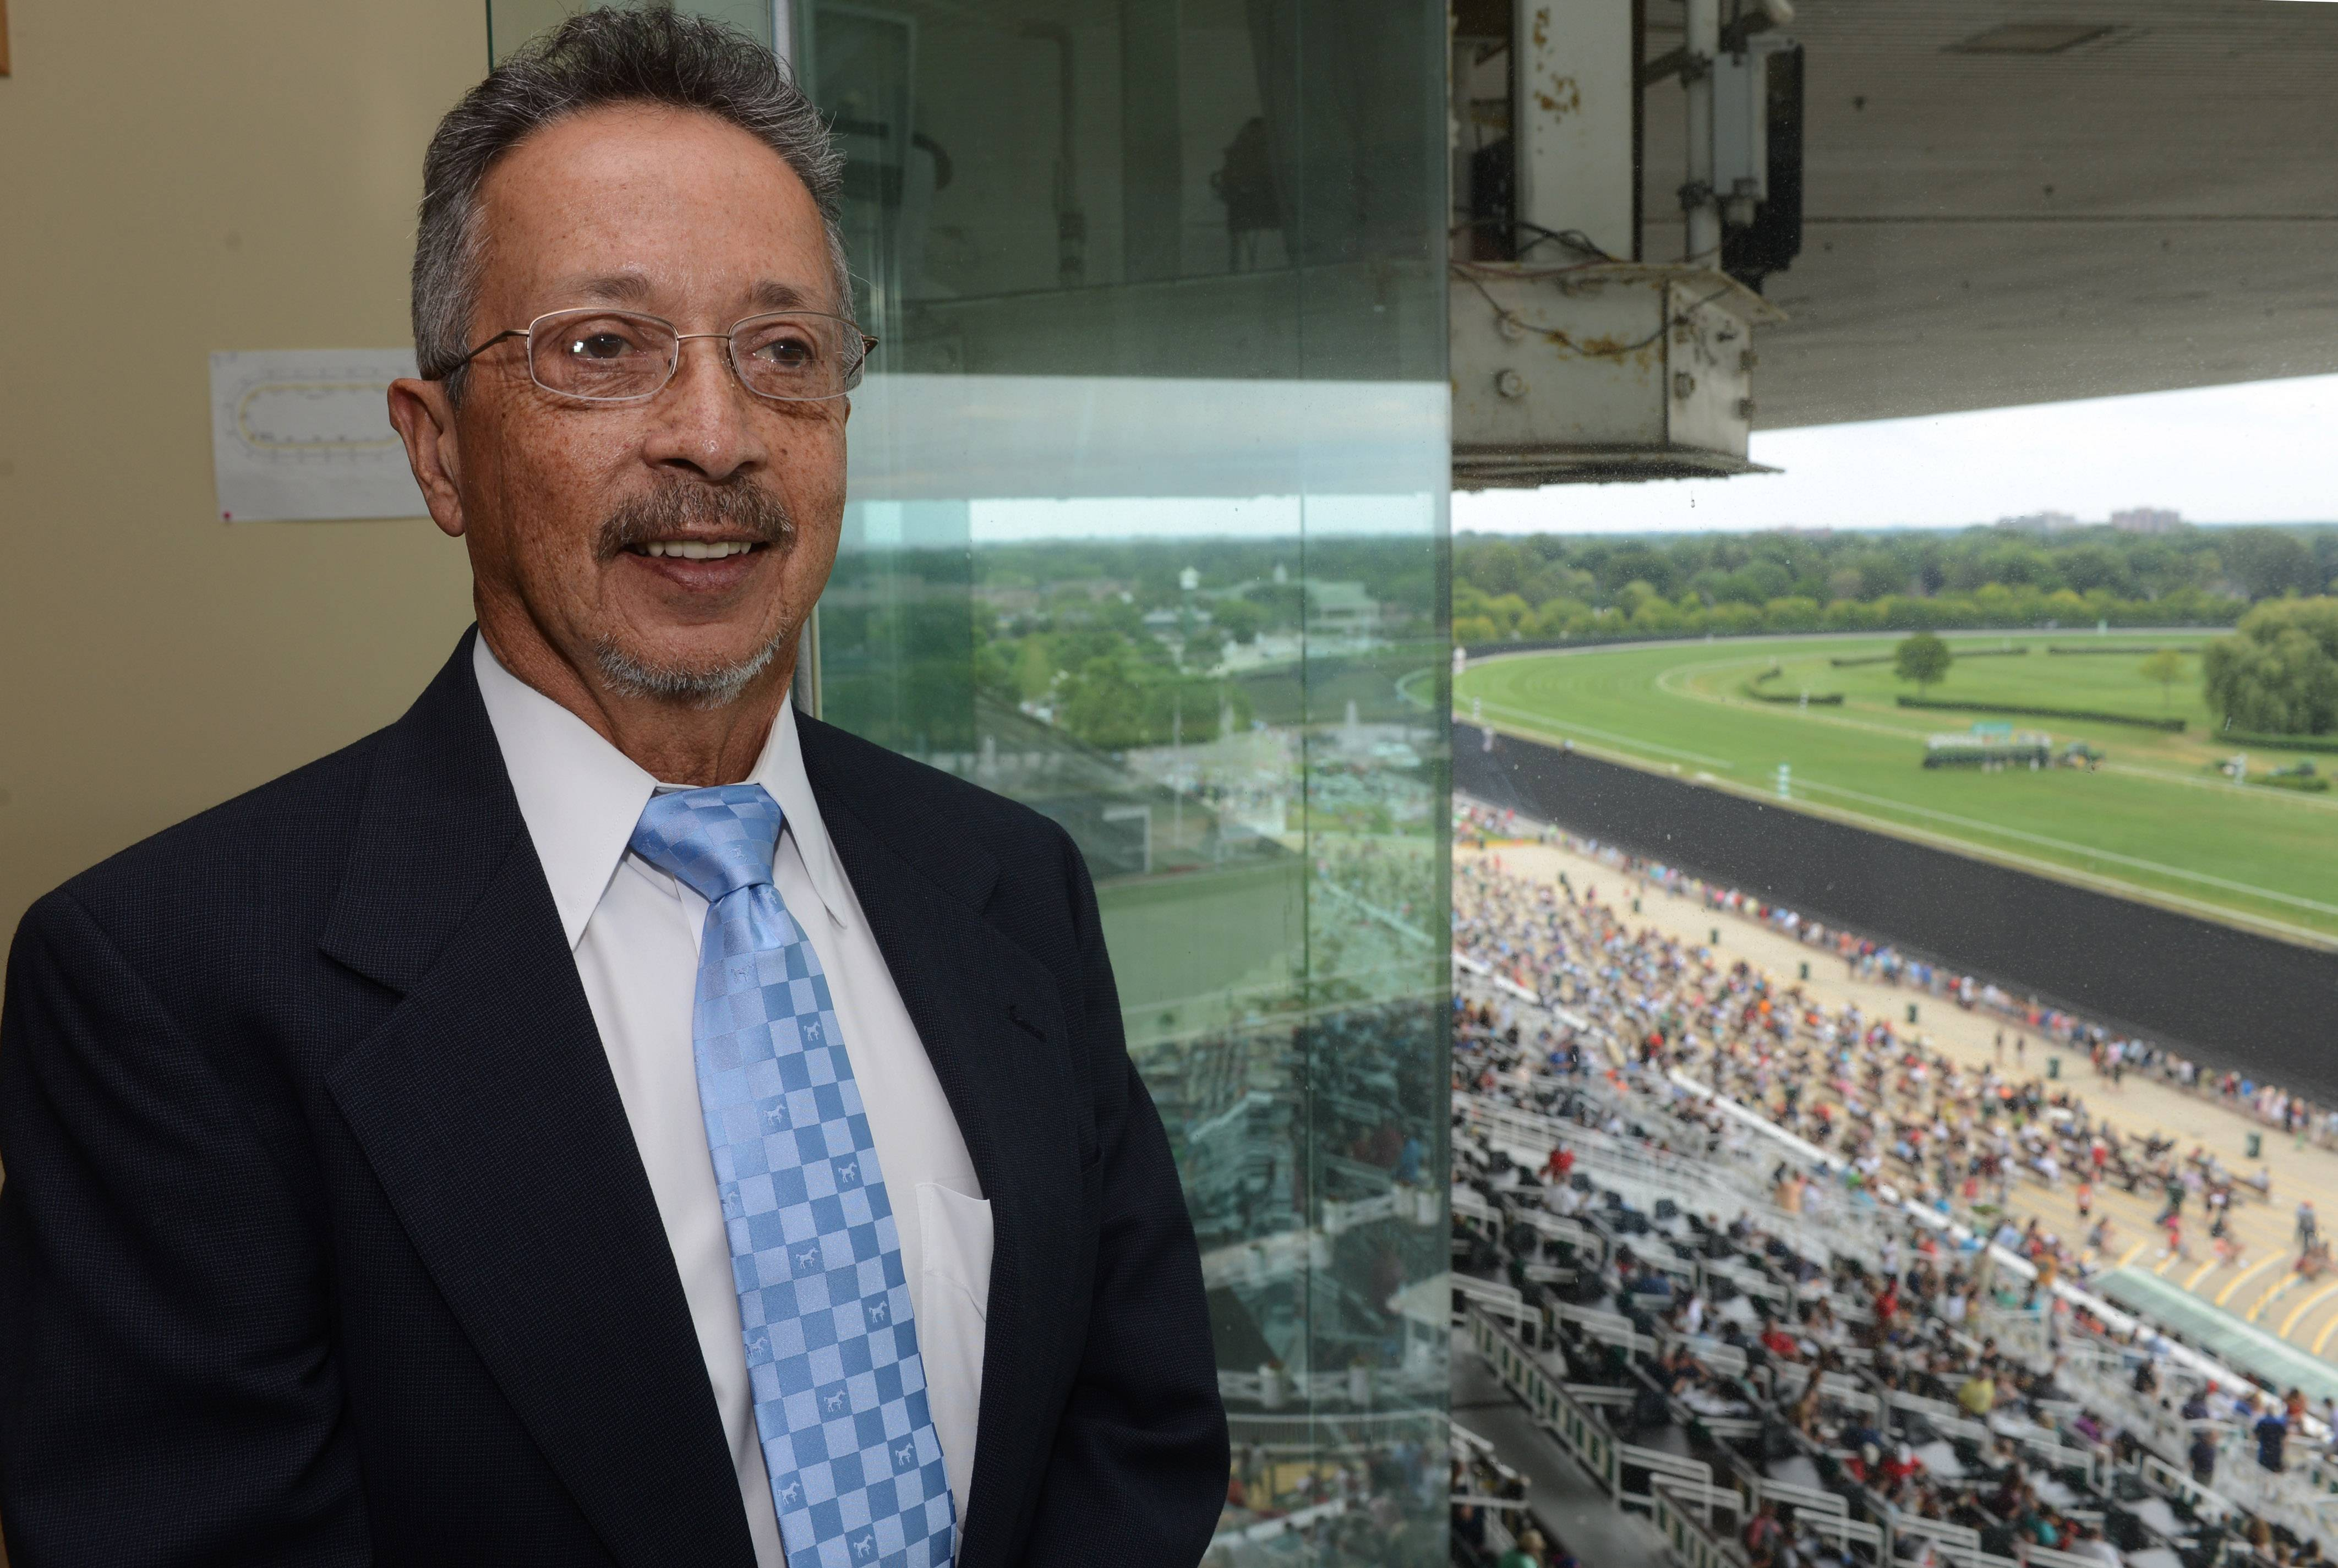 Former jockey Eddie Arroyo will be the racing steward for the Arlington Million on Saturday. He'll oversee his 23rd of the 33 Arlington Millions run since 1981.